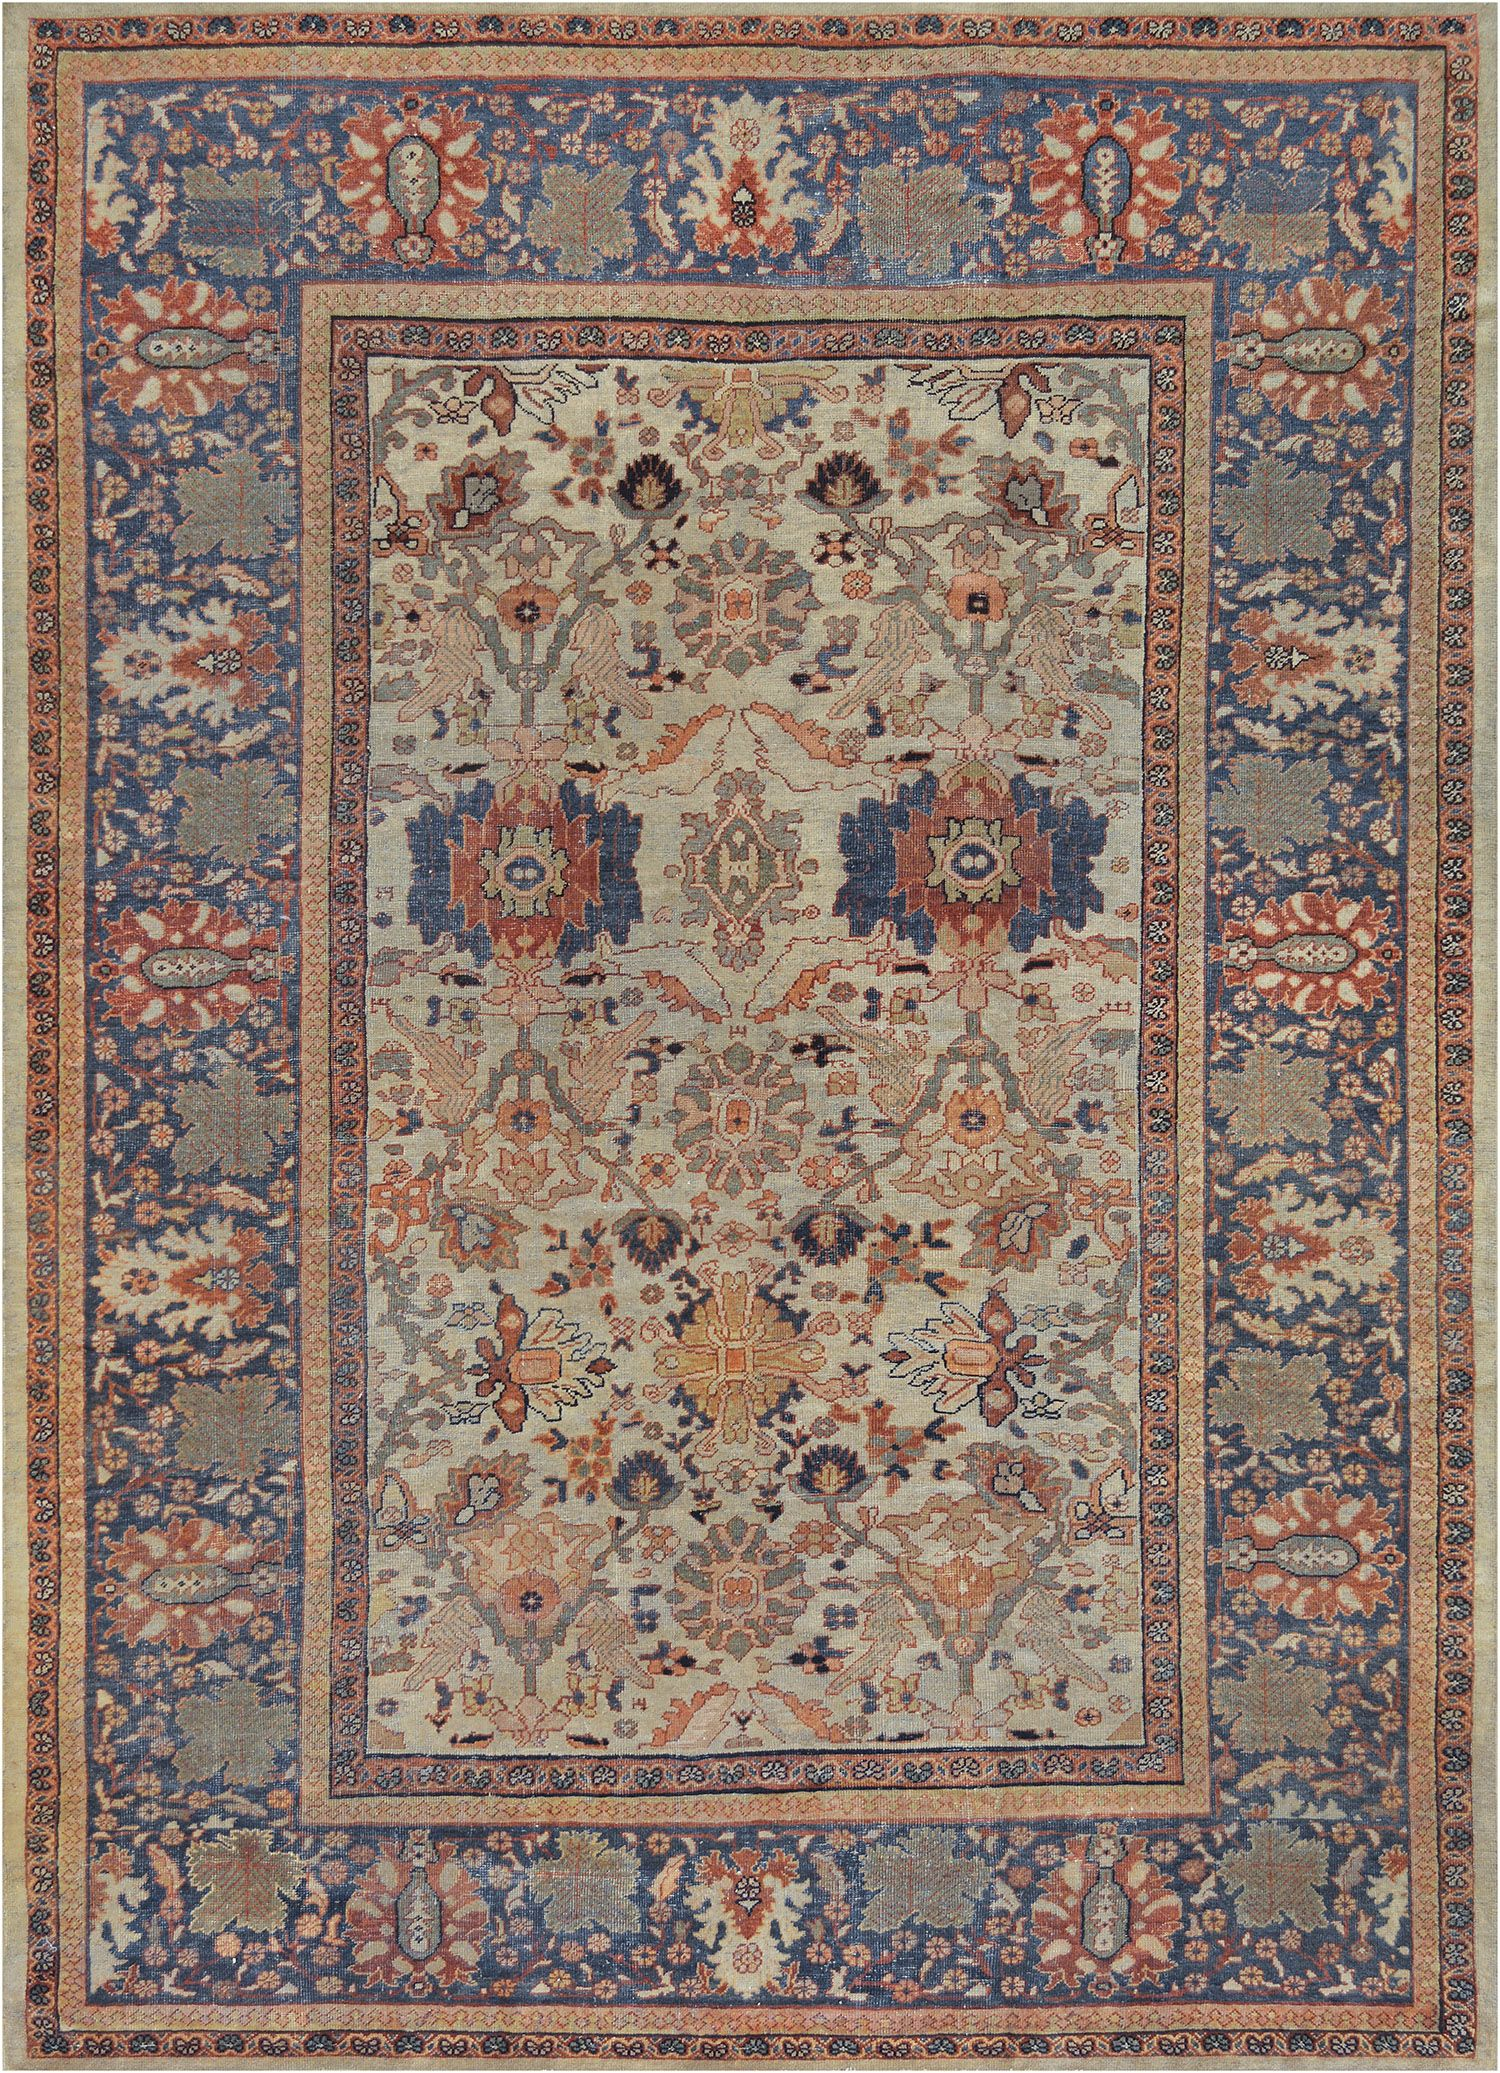 The World S Largest Collection Of Luxury Antique Rugs Vintage Reproduction And Tapestries Finest Purveyor Antiques In